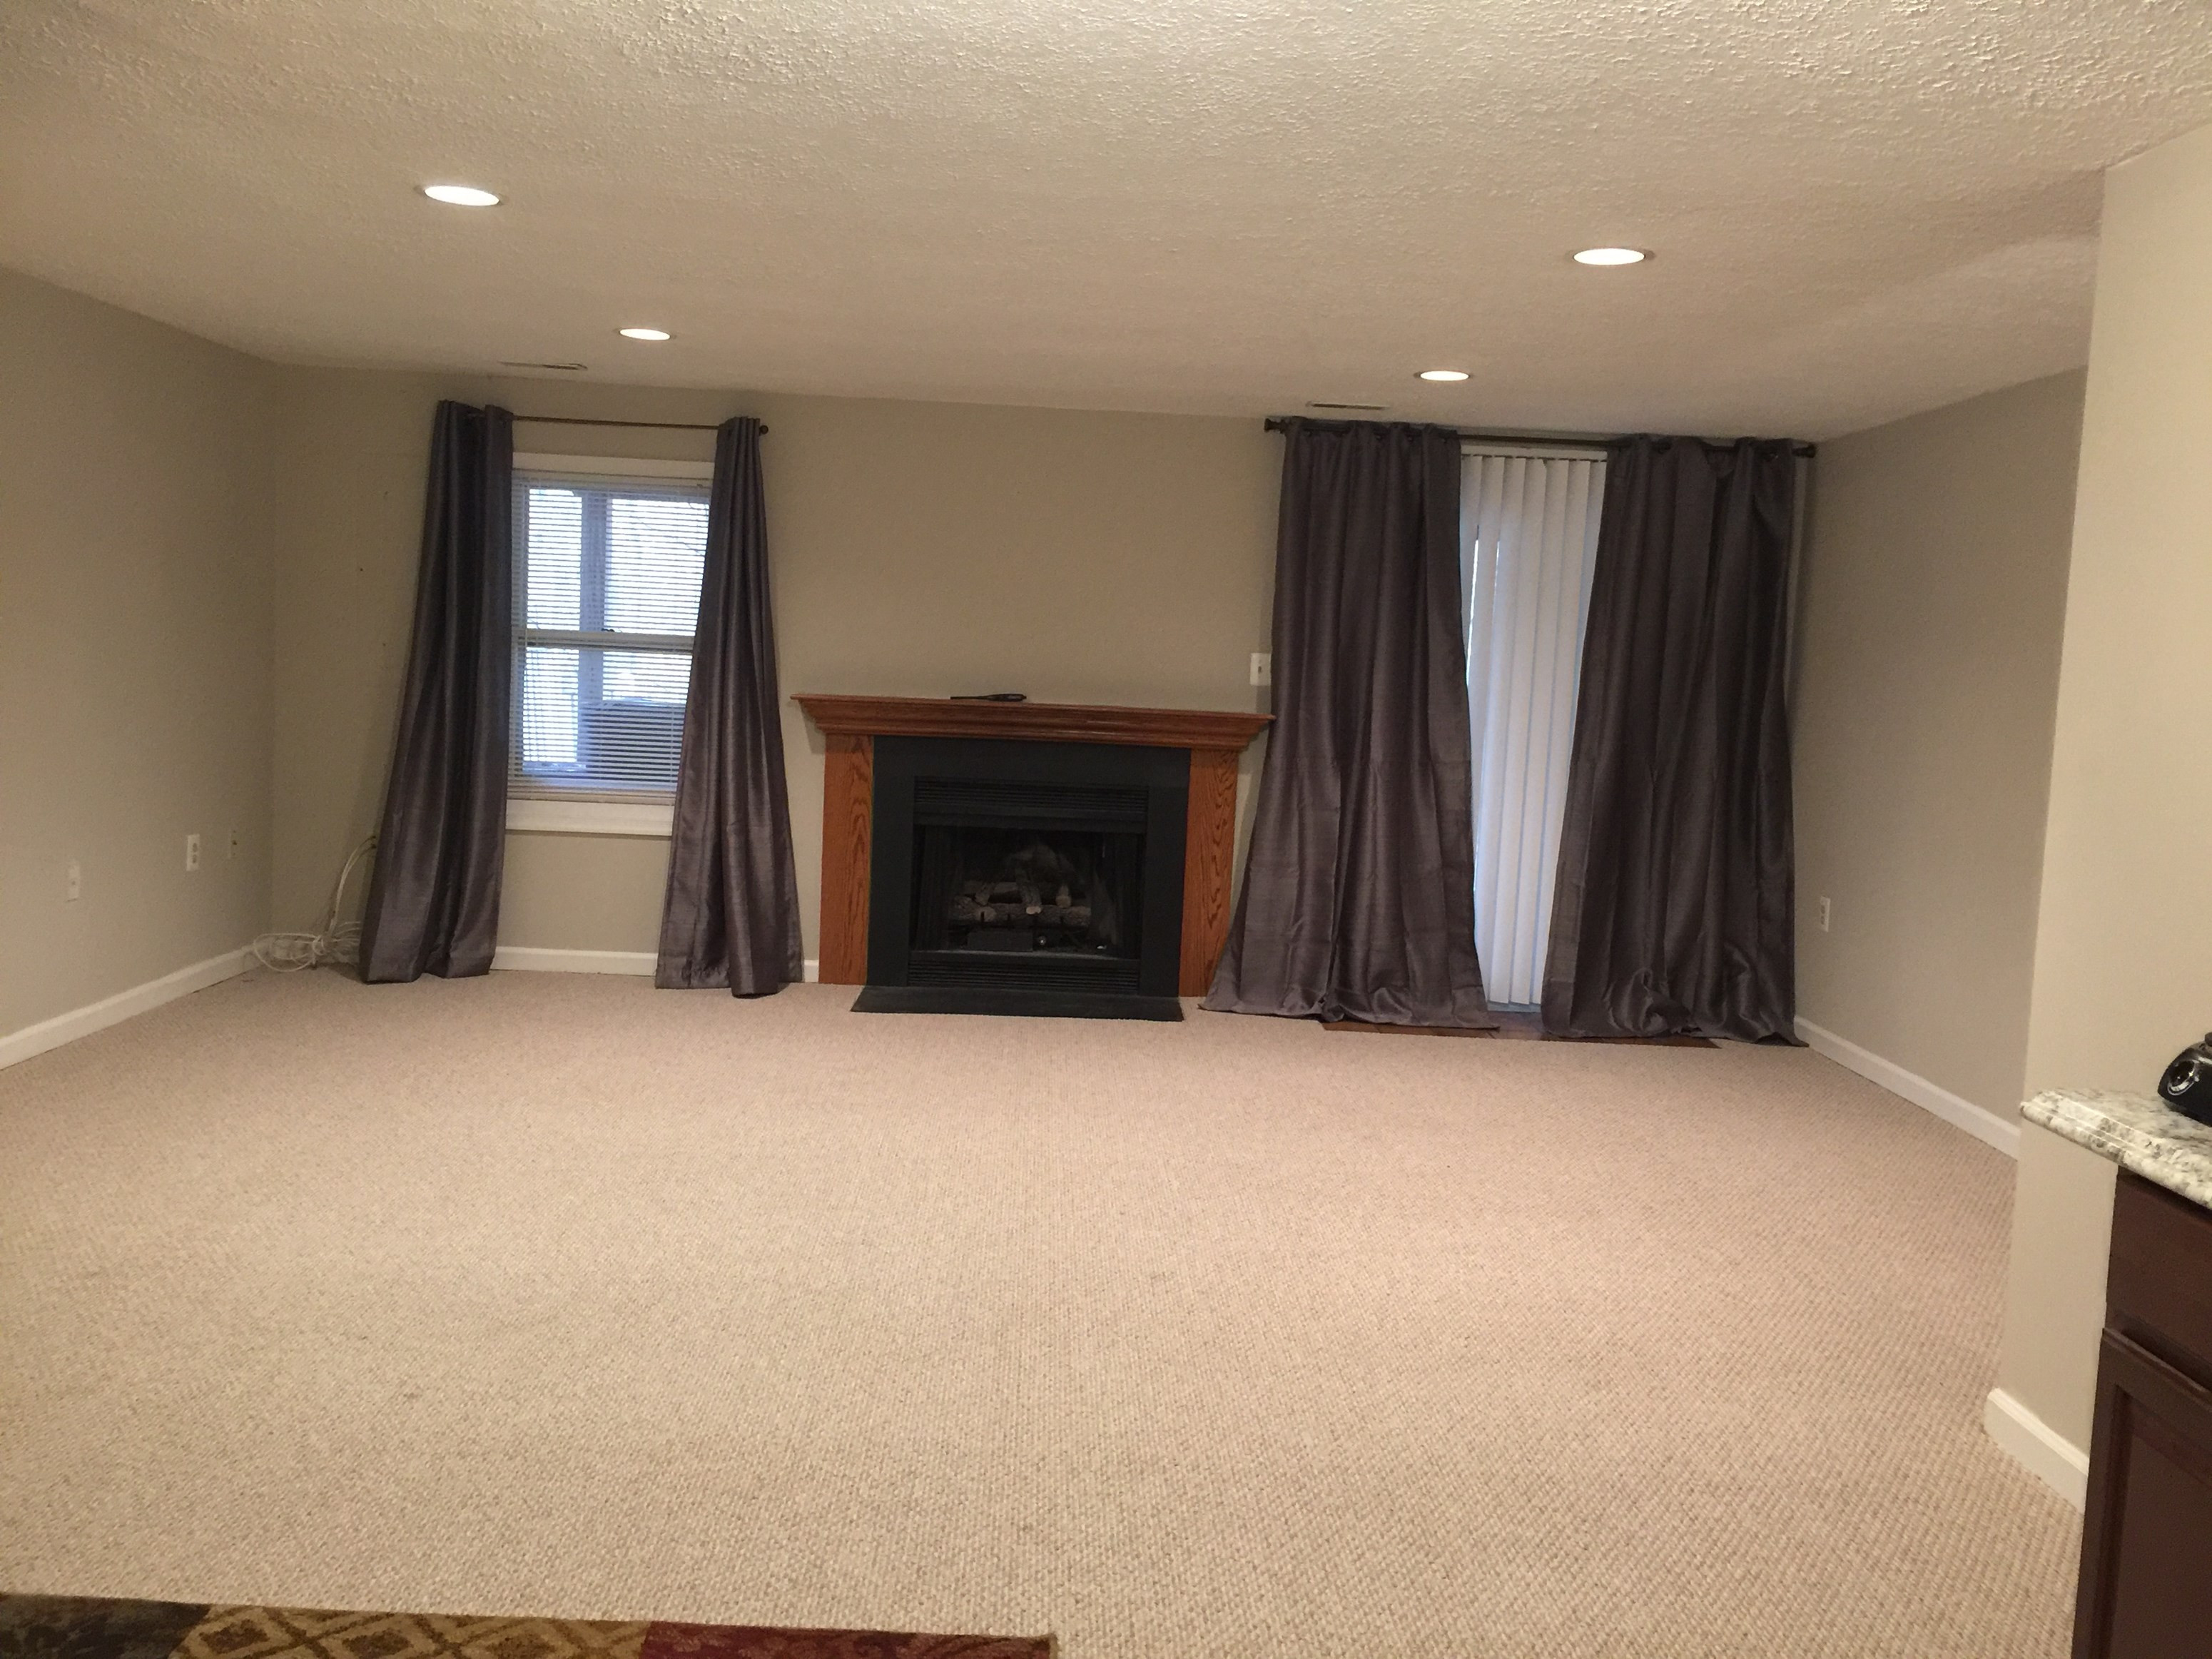 yorktown hardwood flooring toronto of indian roommates in virginia rooms for rent sulekha roommates inside walkout basement apartment in northern centreville near chantilly dulles expo center